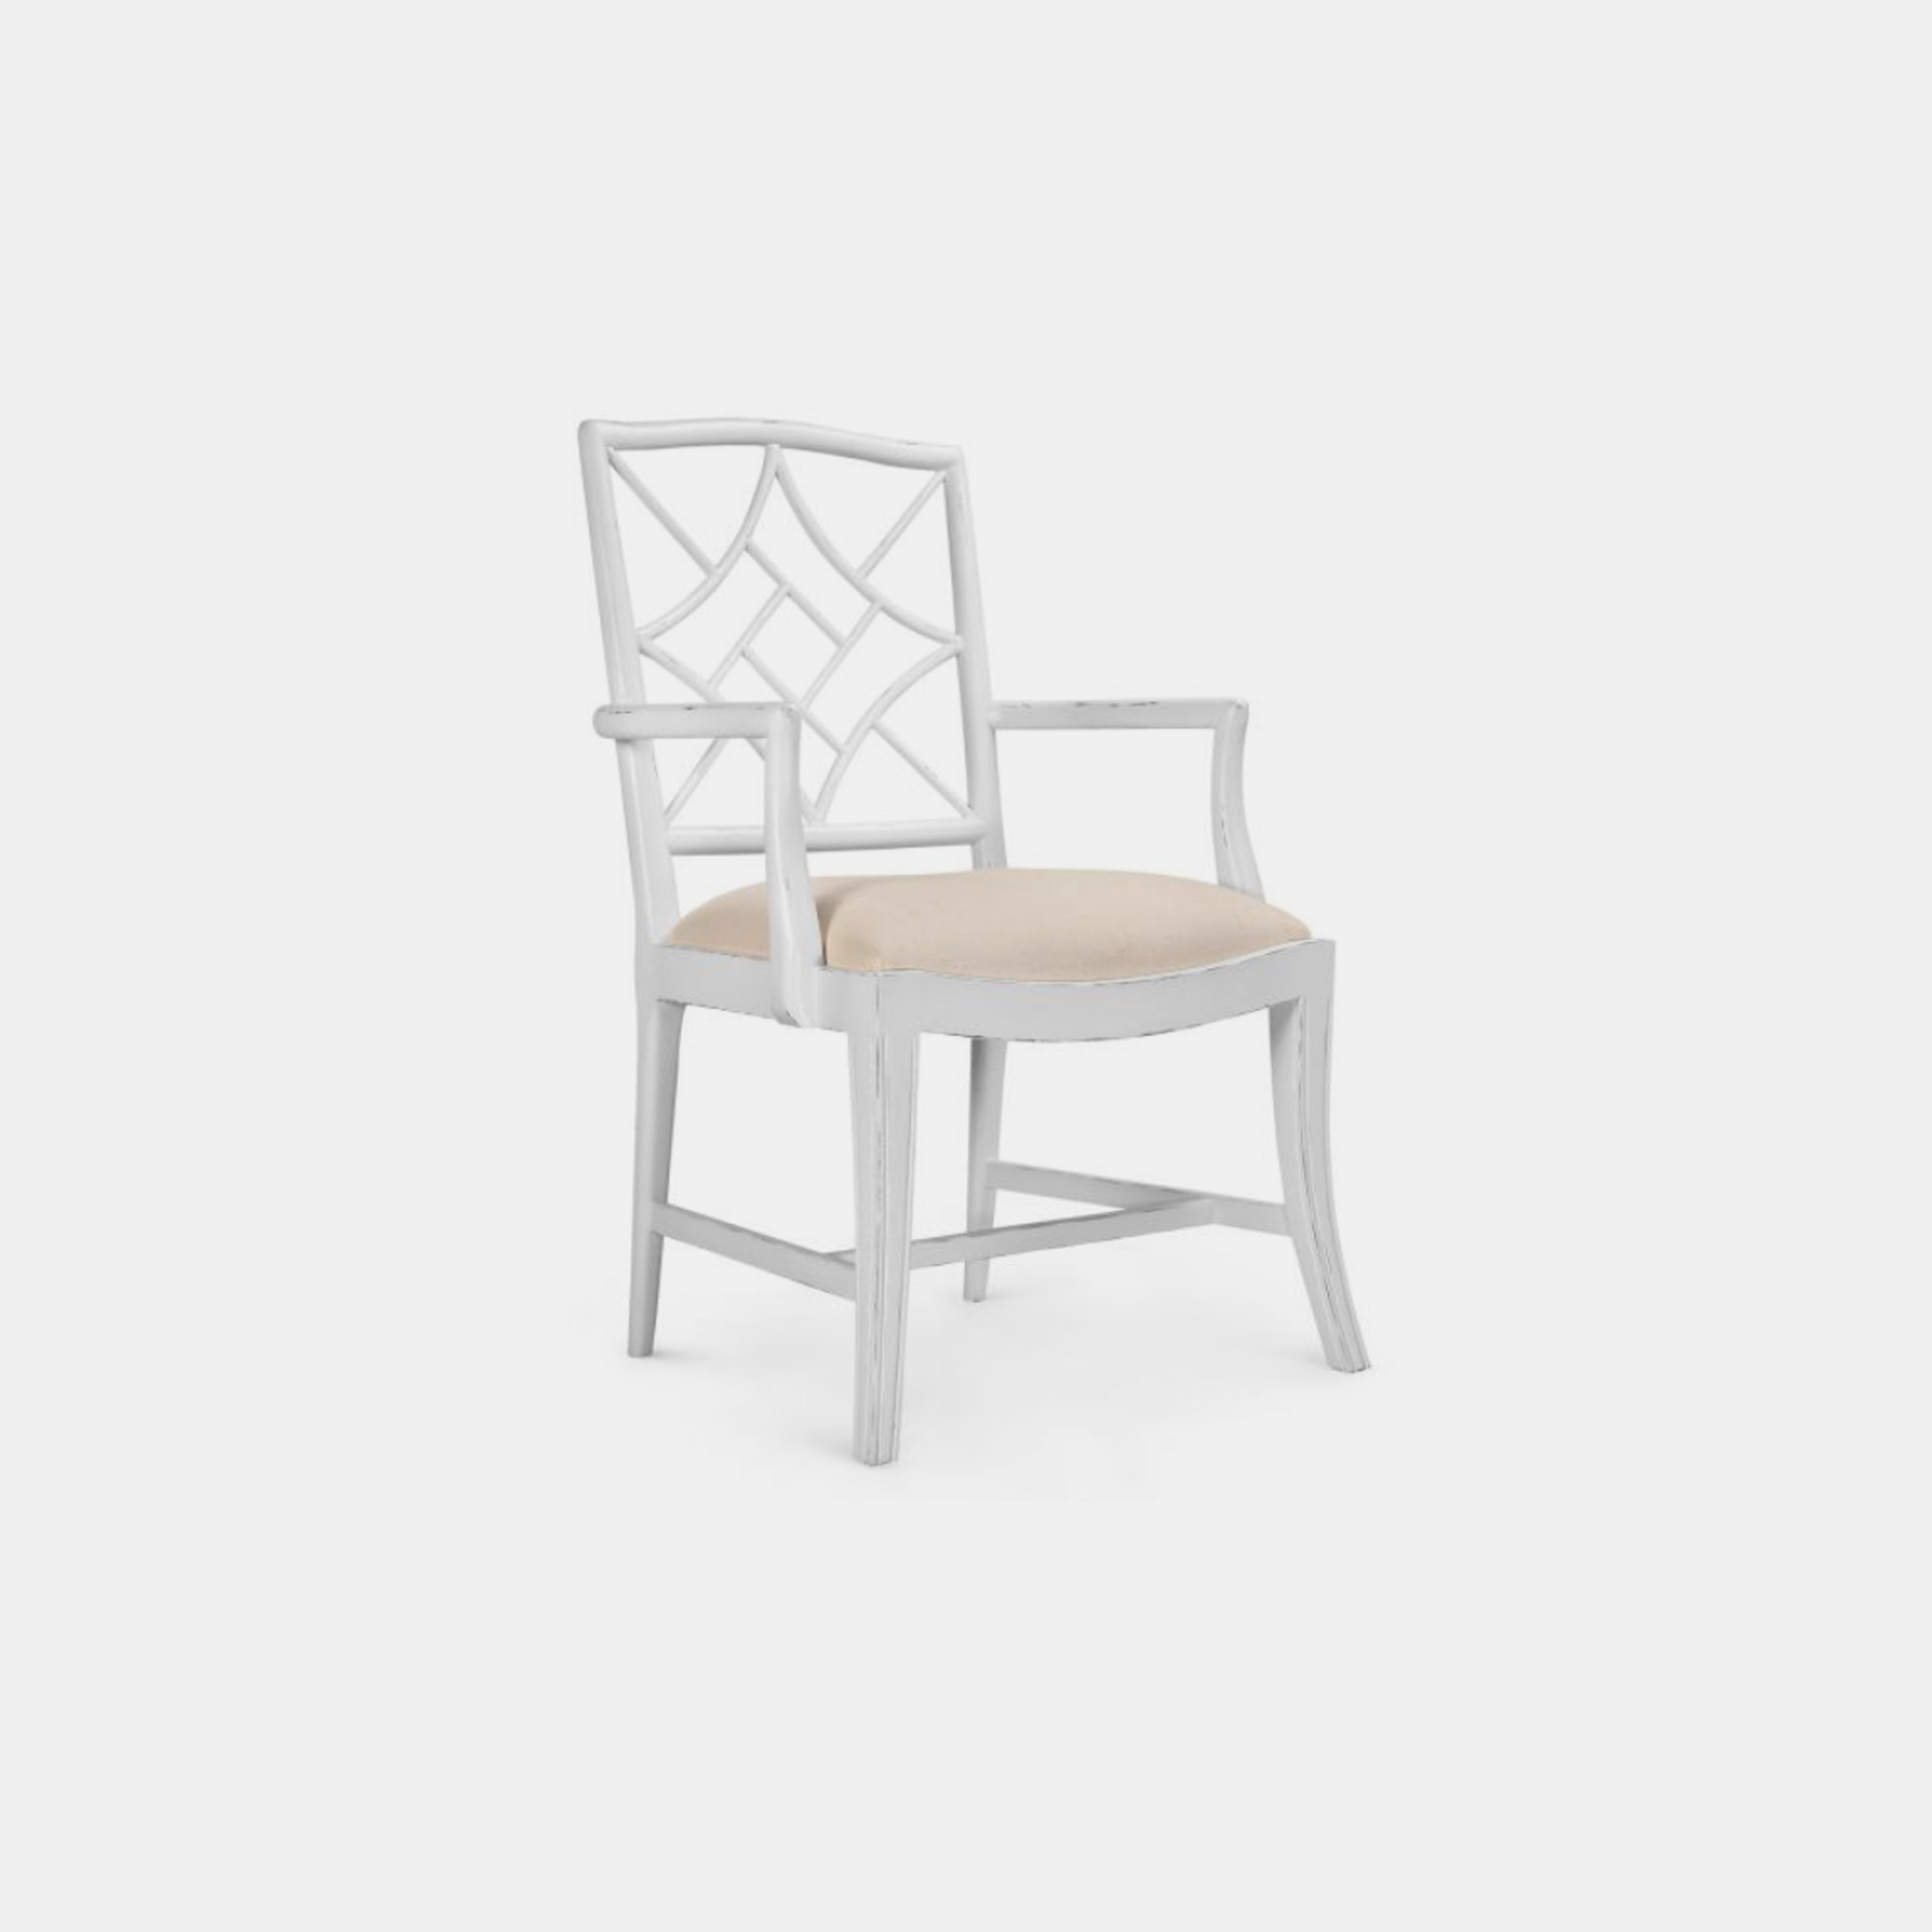 Evelyn Arm Chair  23.5w x 22.5d x 38h Available in white (shown) or black. Also available as side chair. SKU1958BGW